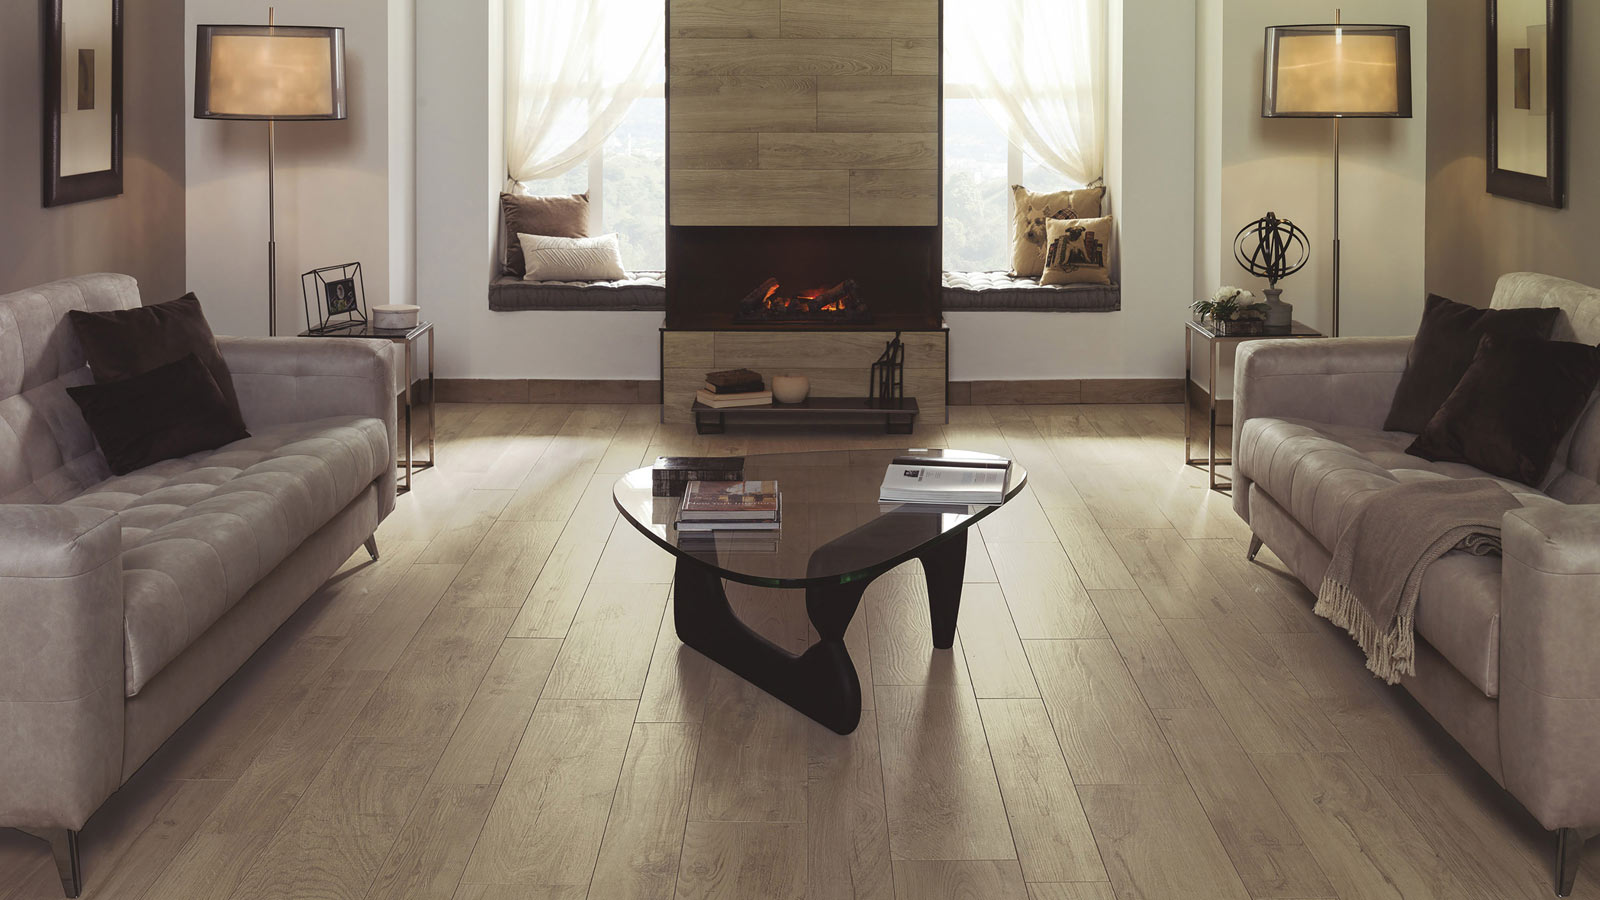 Par-Ker-Forest-Maple-22-cm-x-90-cm+14,3-cm-x-90-cm-Porcelanosa